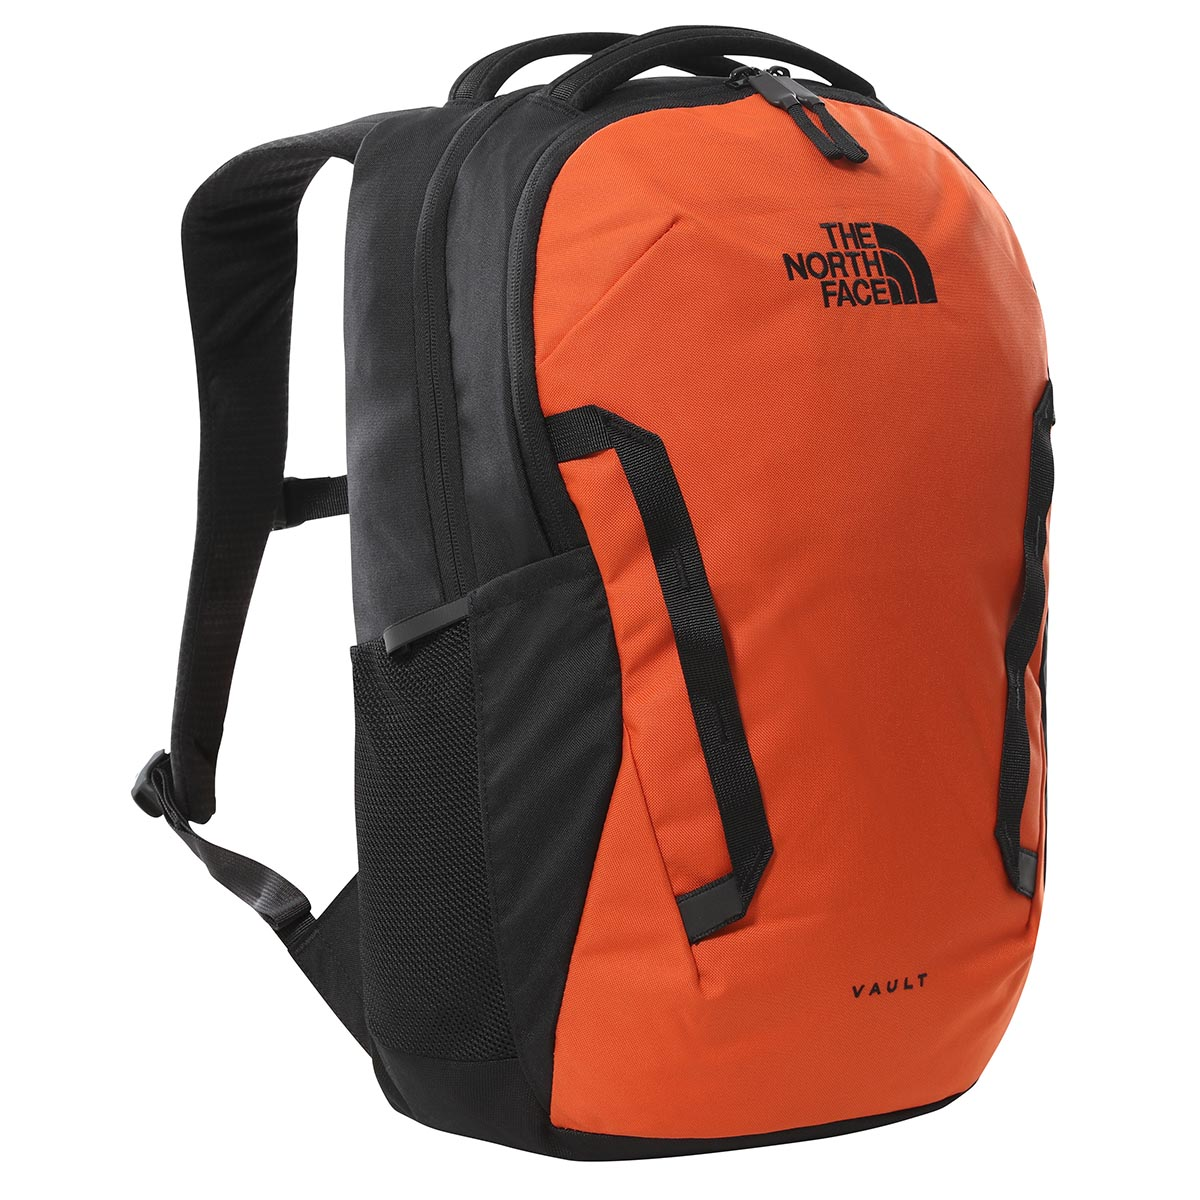 The Northface VAULT NF0A3VY2T971